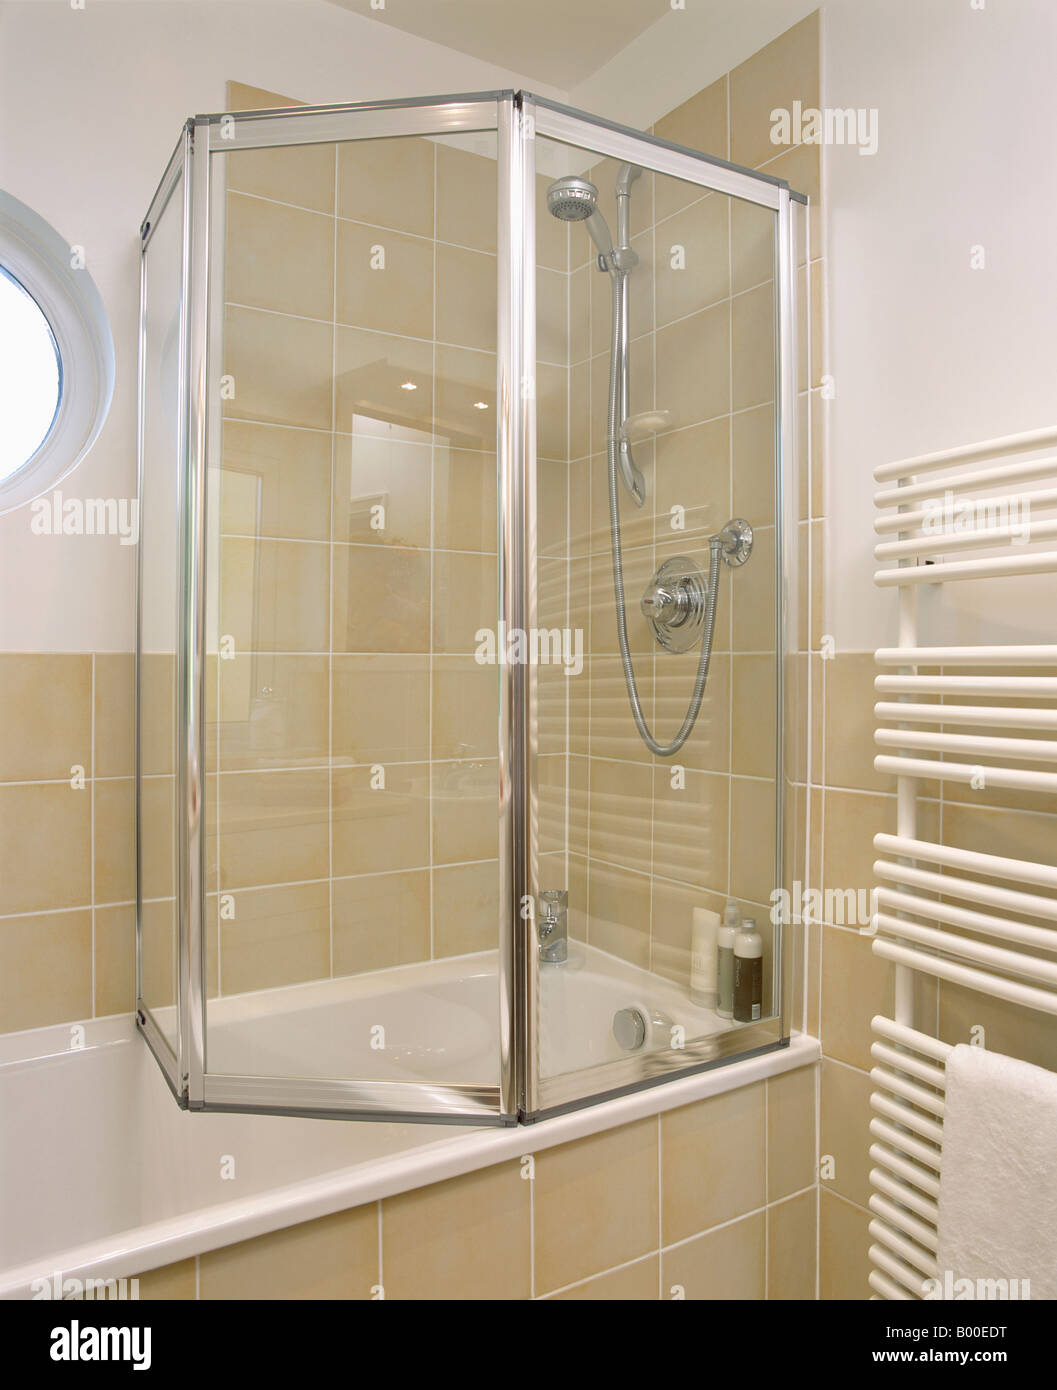 folding glass shower doors on bath in modern bathroom with neutral stock photo royalty free. Black Bedroom Furniture Sets. Home Design Ideas